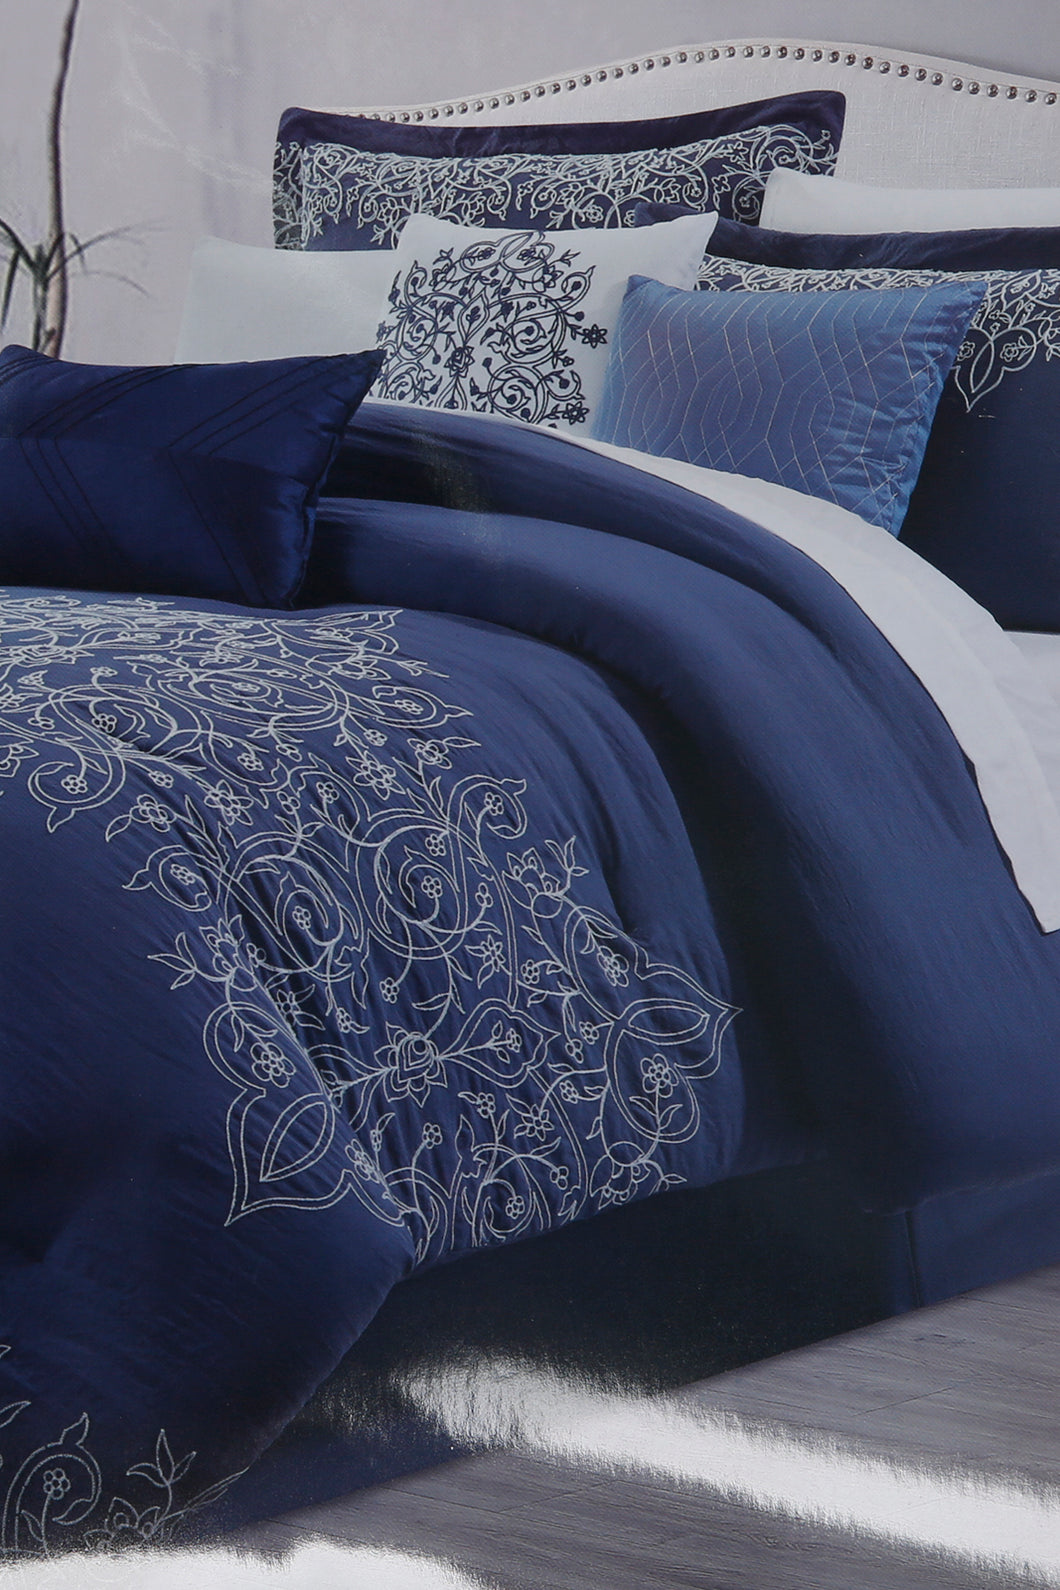 Navy 7-Piece Embroidery Comforter Set (King Size)